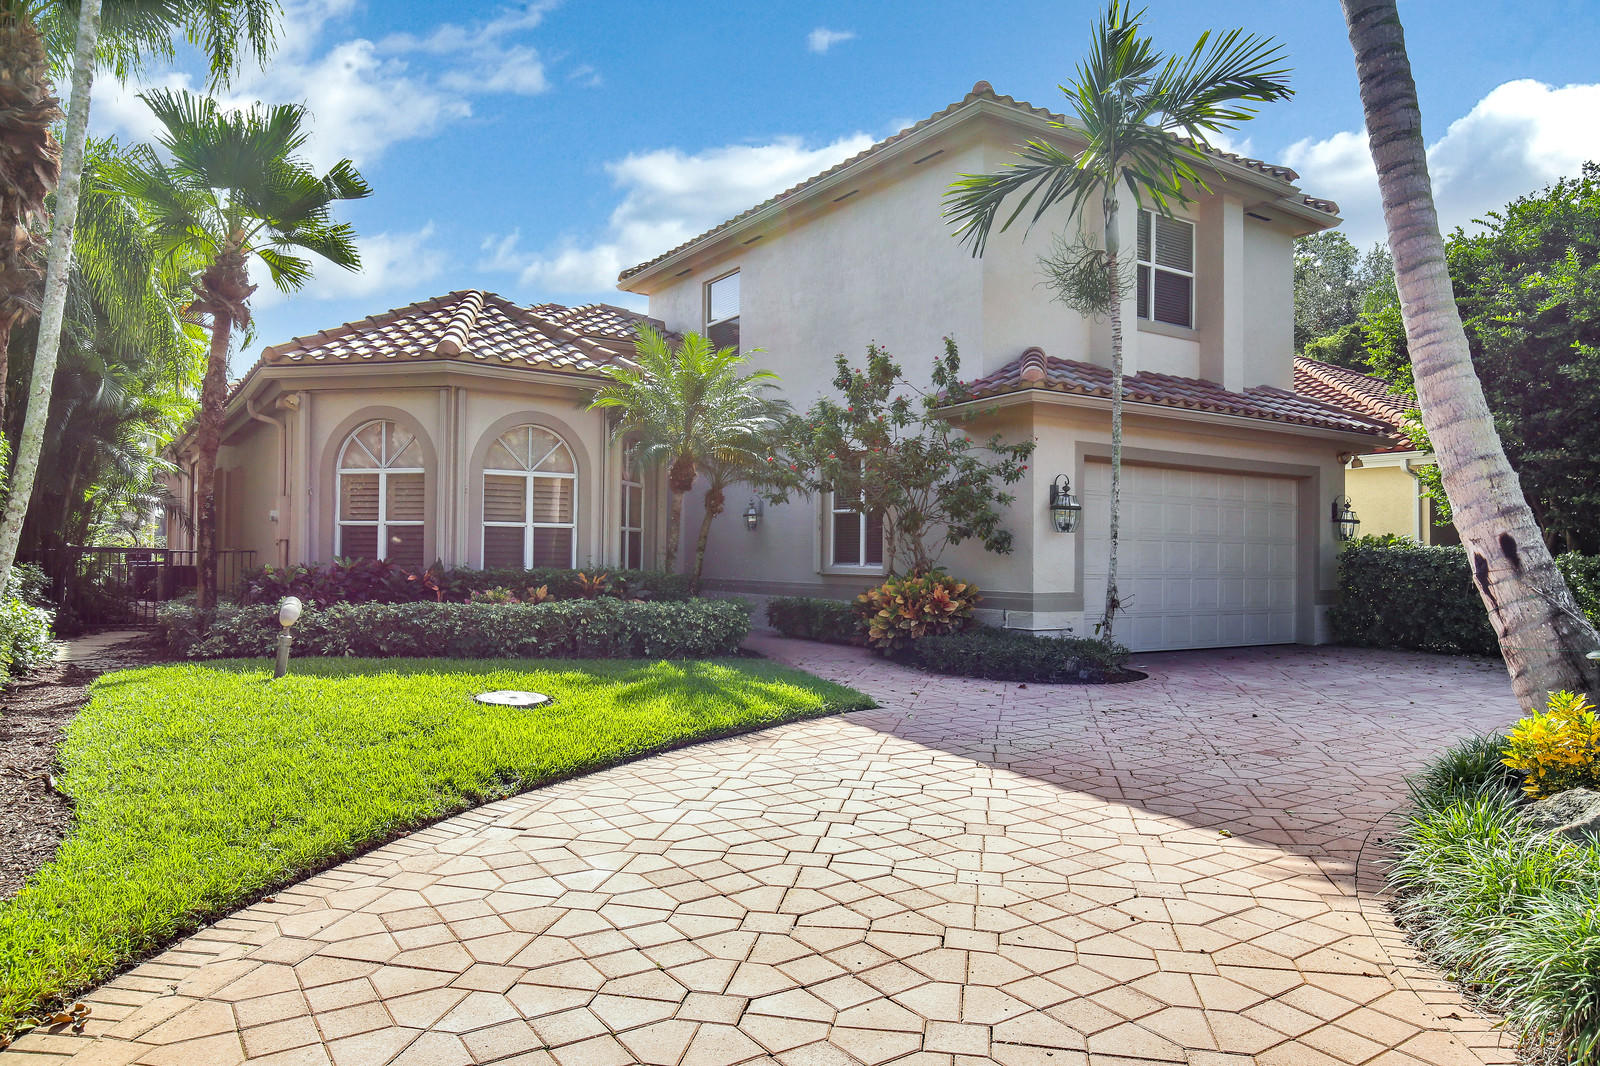 3394 Degas Dr W, Palm Beach Gardens, Florida 33410, 5 Bedrooms Bedrooms, ,6 BathroomsBathrooms,A,Single family,Degas Dr W,RX-10480833